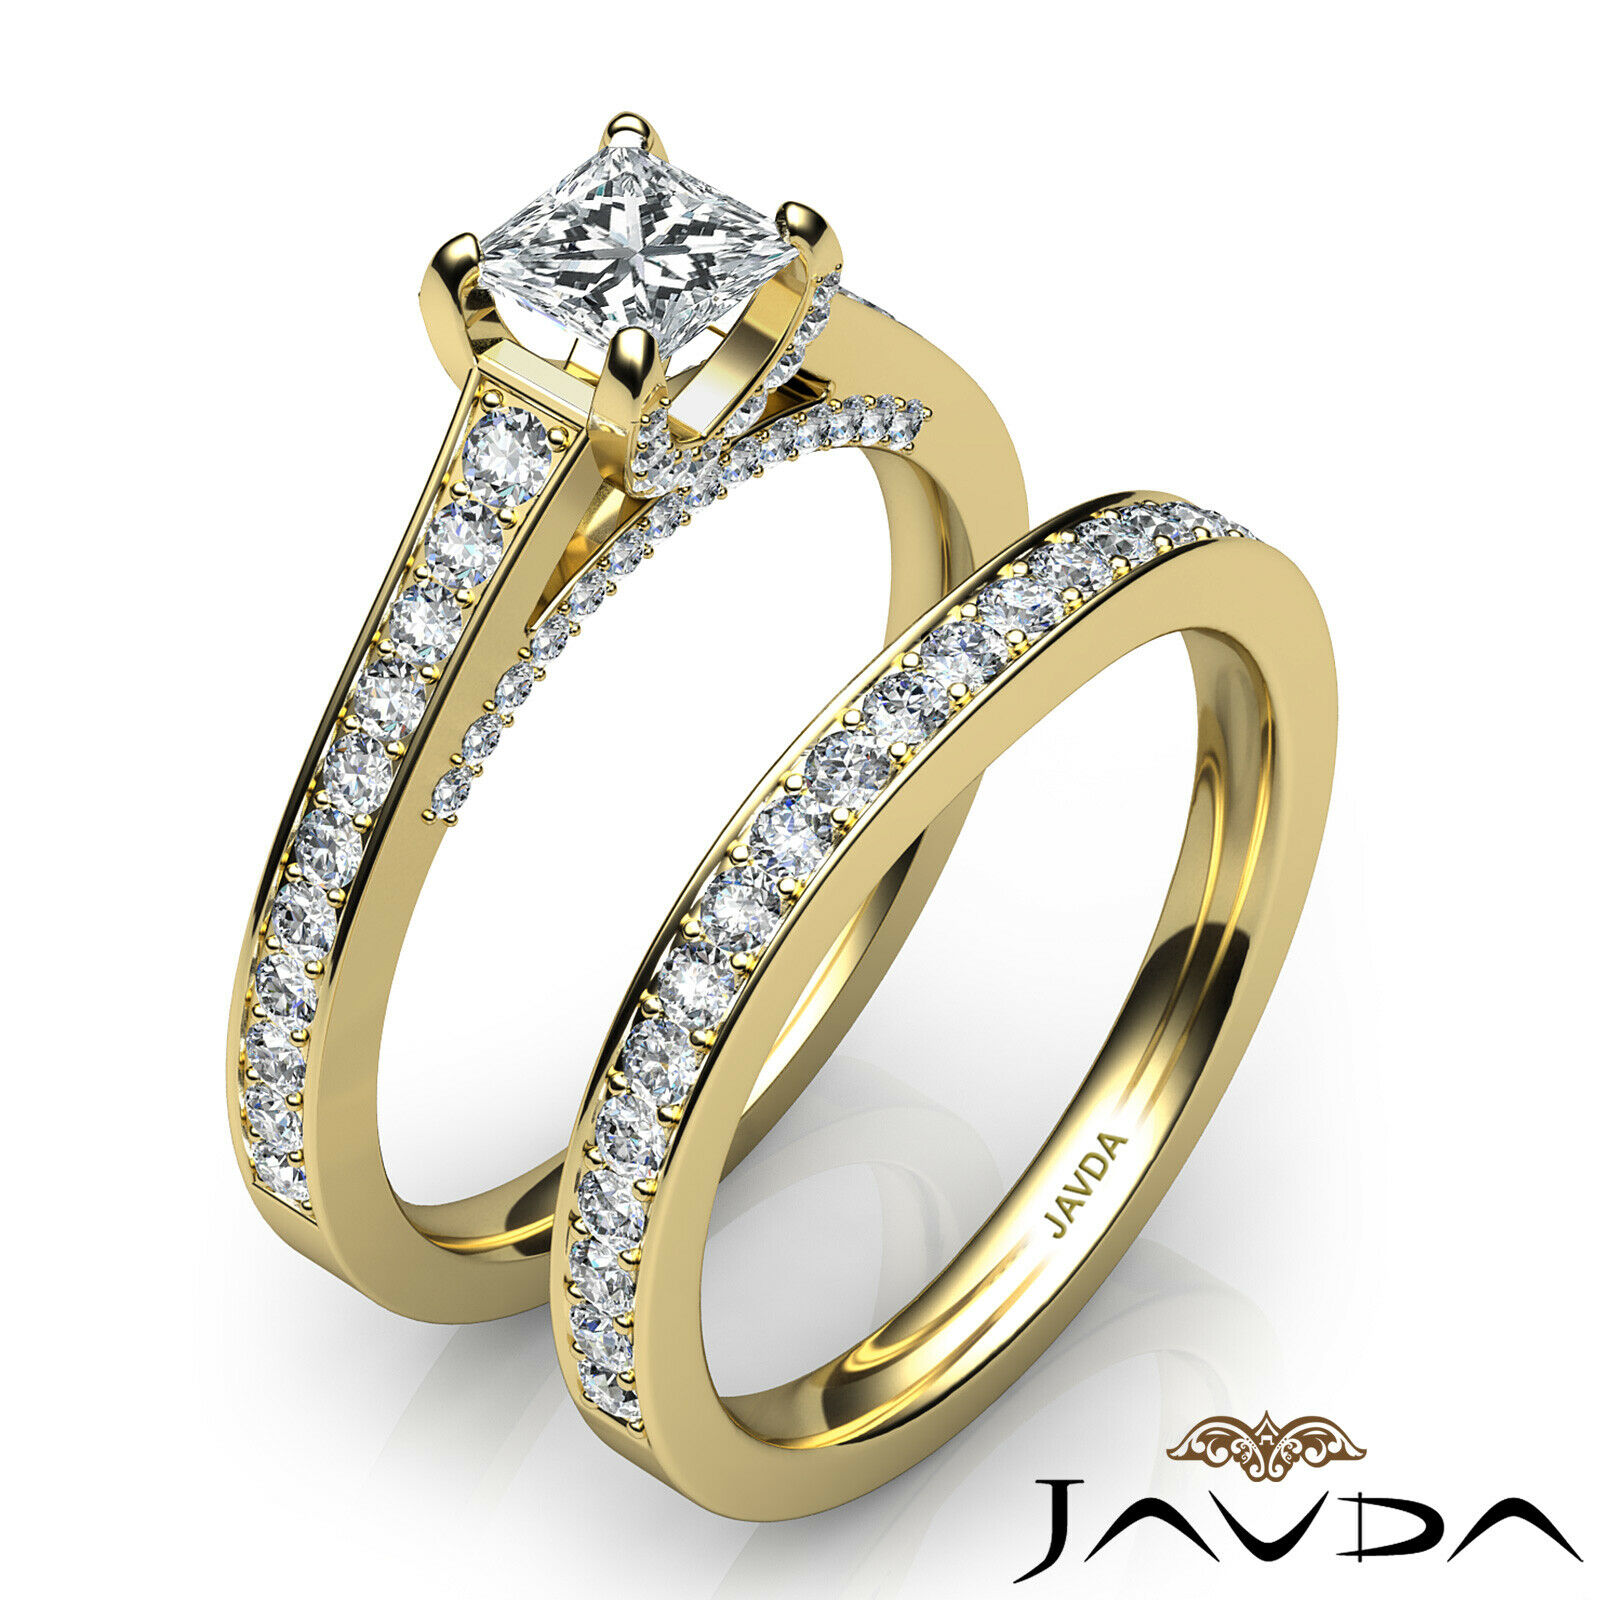 2.05ct Accent Bridge Pave Bridal Princess Diamond Engagement Ring GIA F-VS2 Gold 10